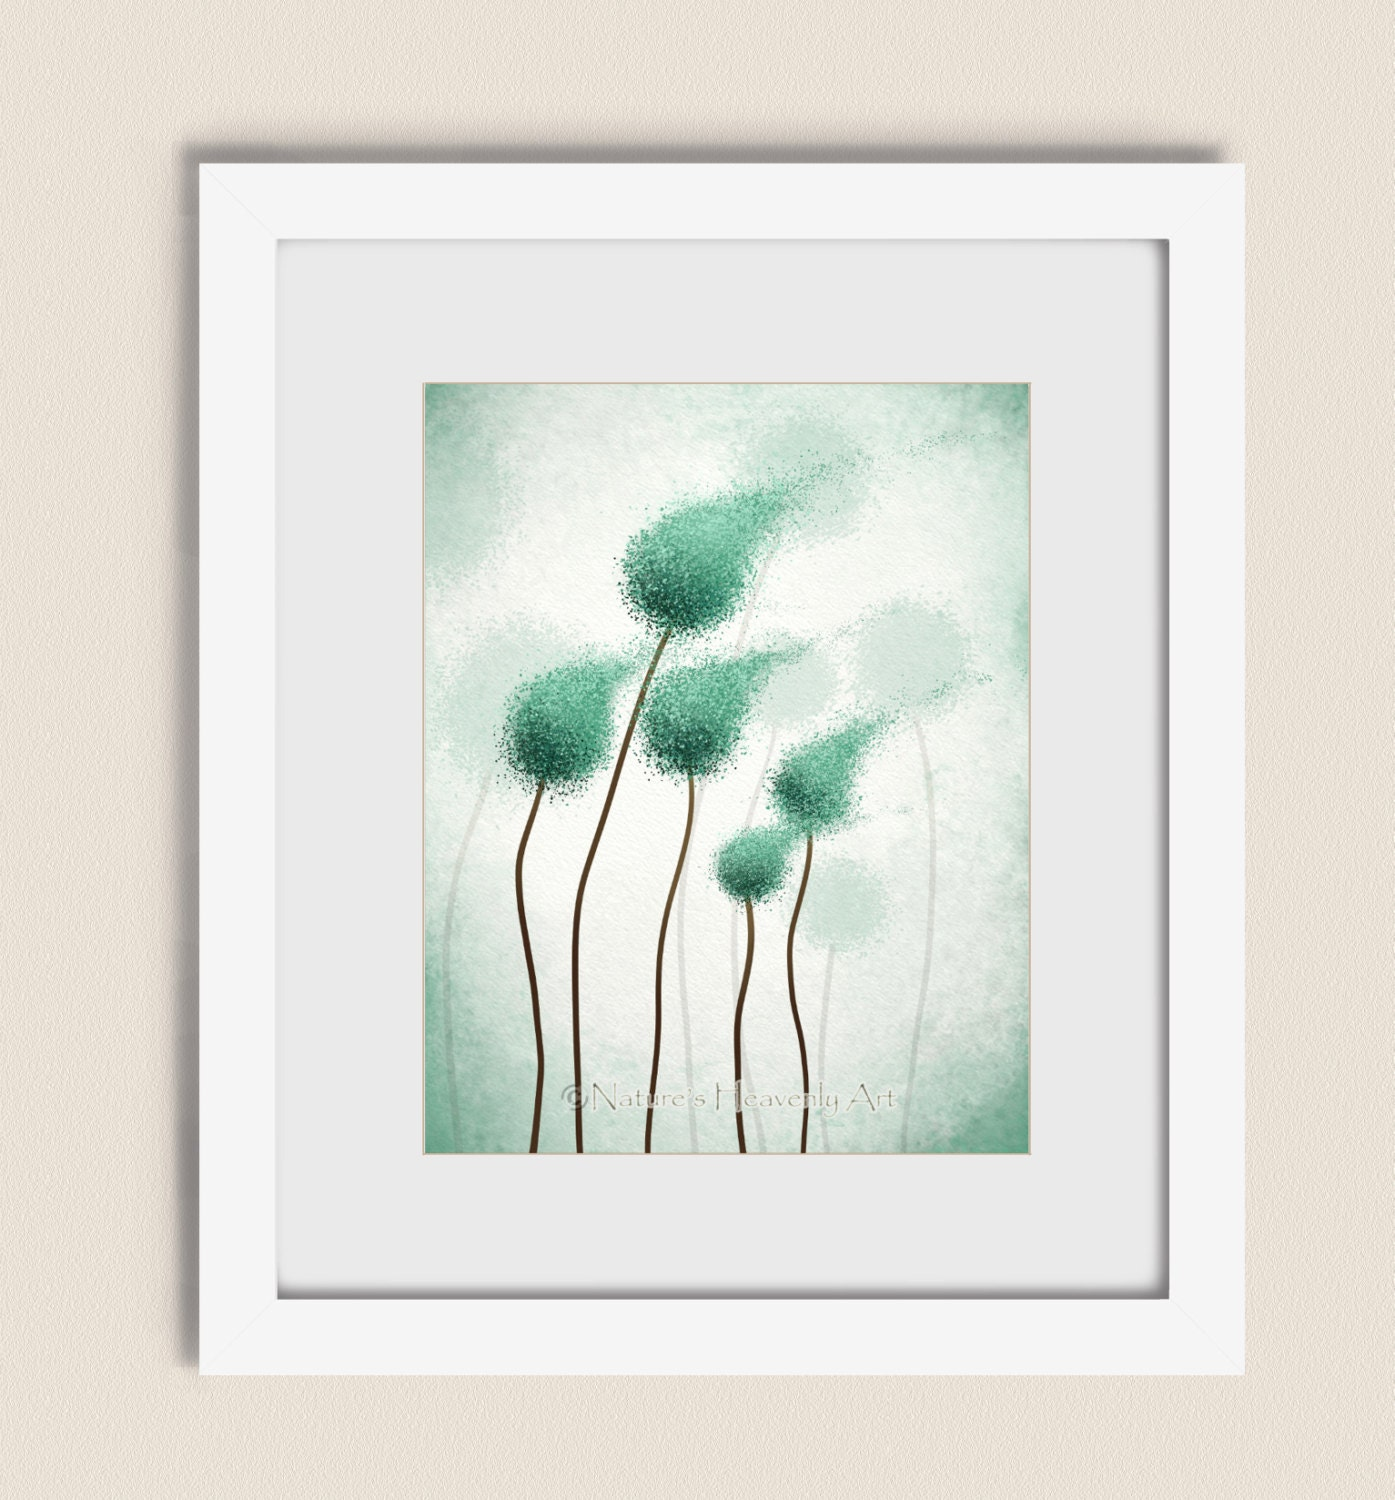 Teal Green Wall Decor : Teal abstract round tree wall art print blue green